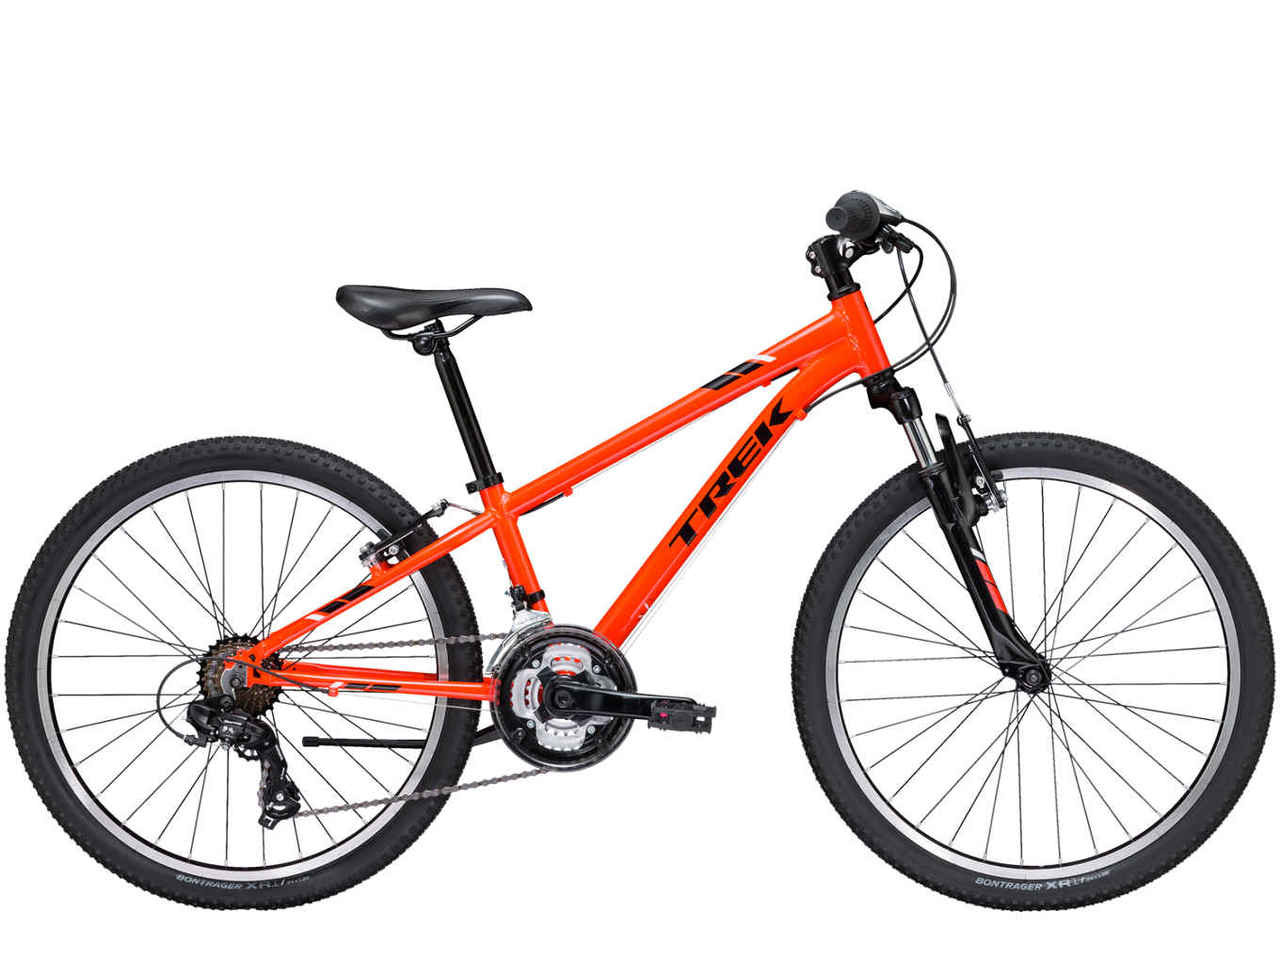 3cb9f010080 Trek Precaliber 24 21-speed Boy's Orange - Gear West Ski and Run